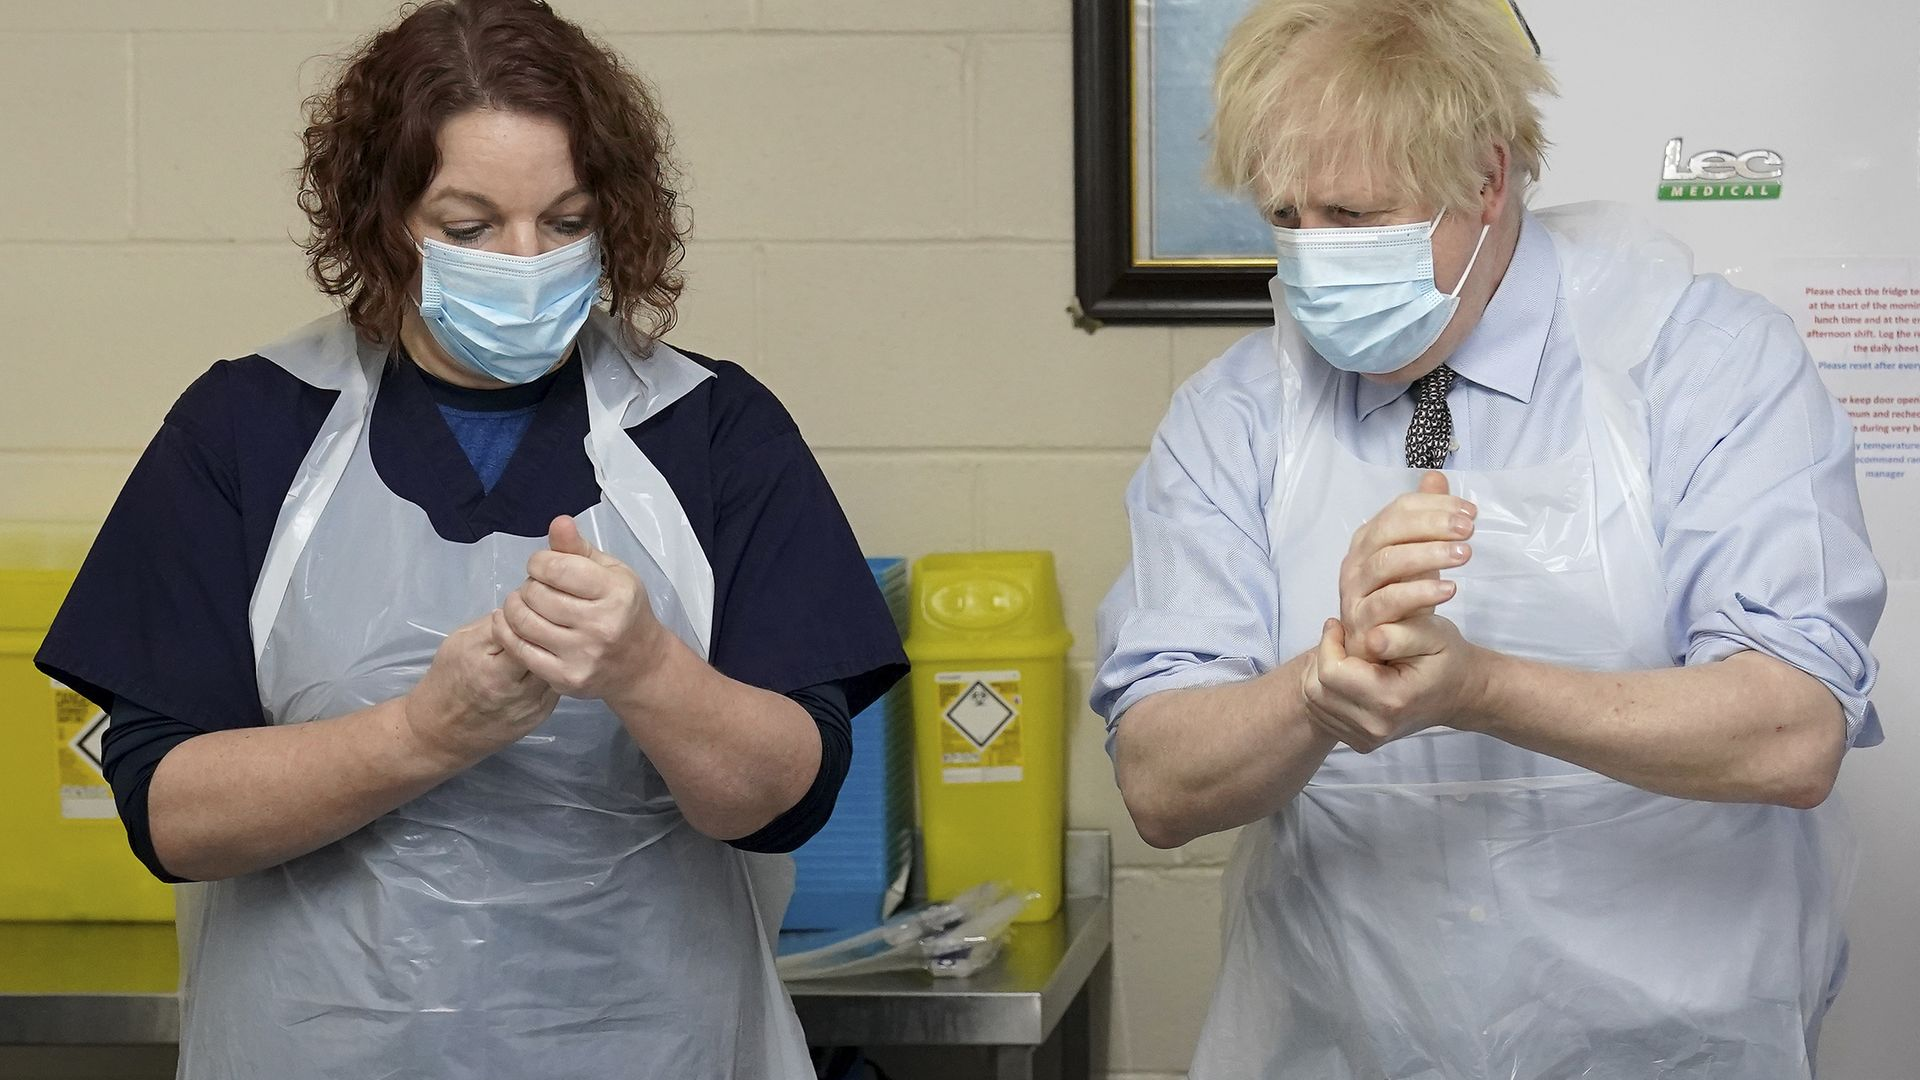 Prime Minister Boris Johnson is shown how to prepare the vaccine by advance nurse practitioner Sarah Sowden during a visit to a coronavirus vaccination centre in Batley, West Yorkshire. Picture date: Monday February 1, 2021. - Credit: PA